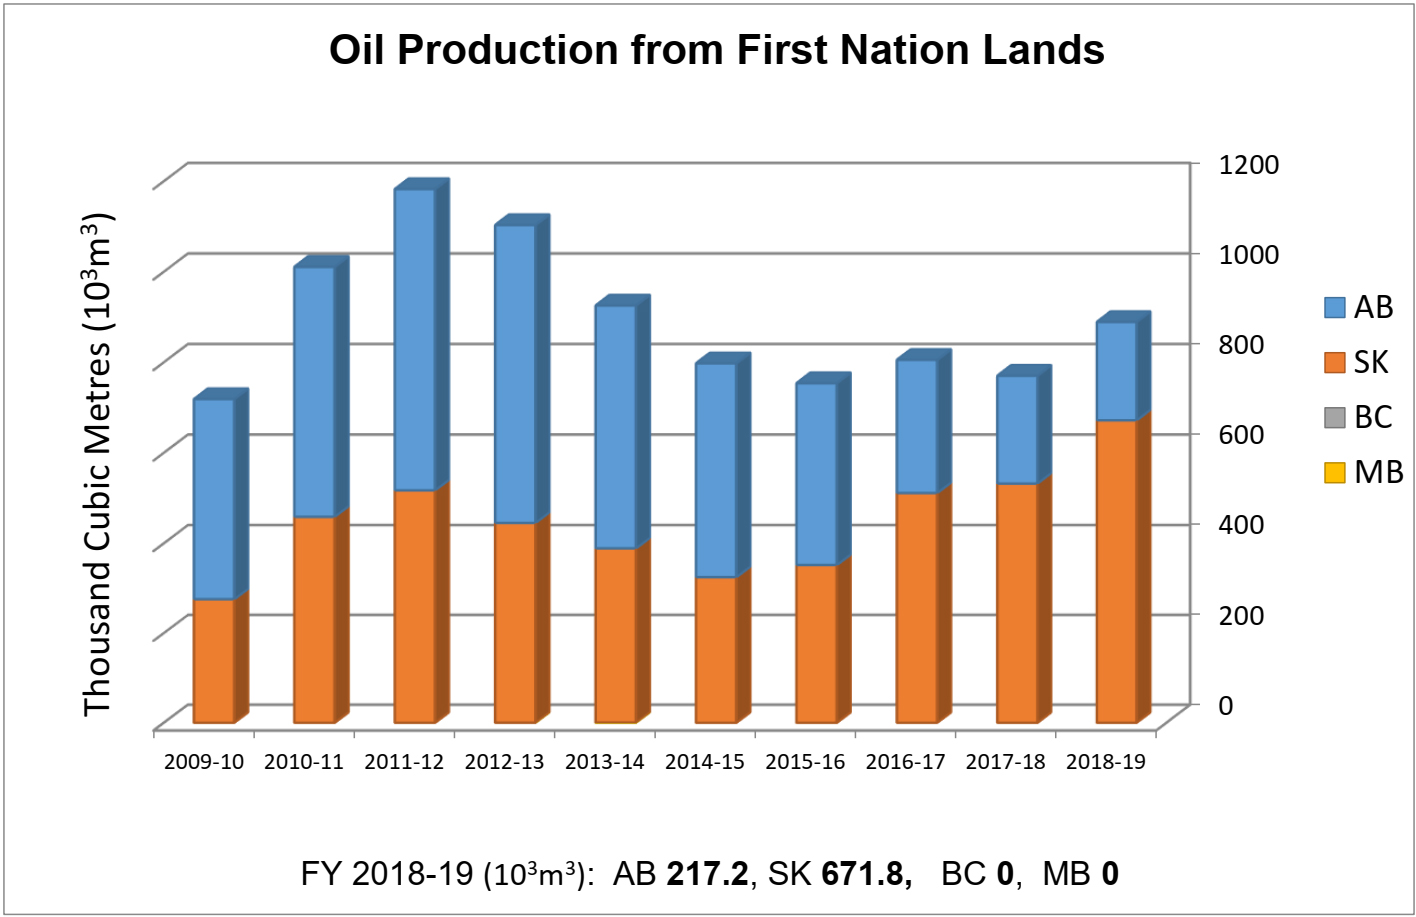 Oil Production from First Nation Lands